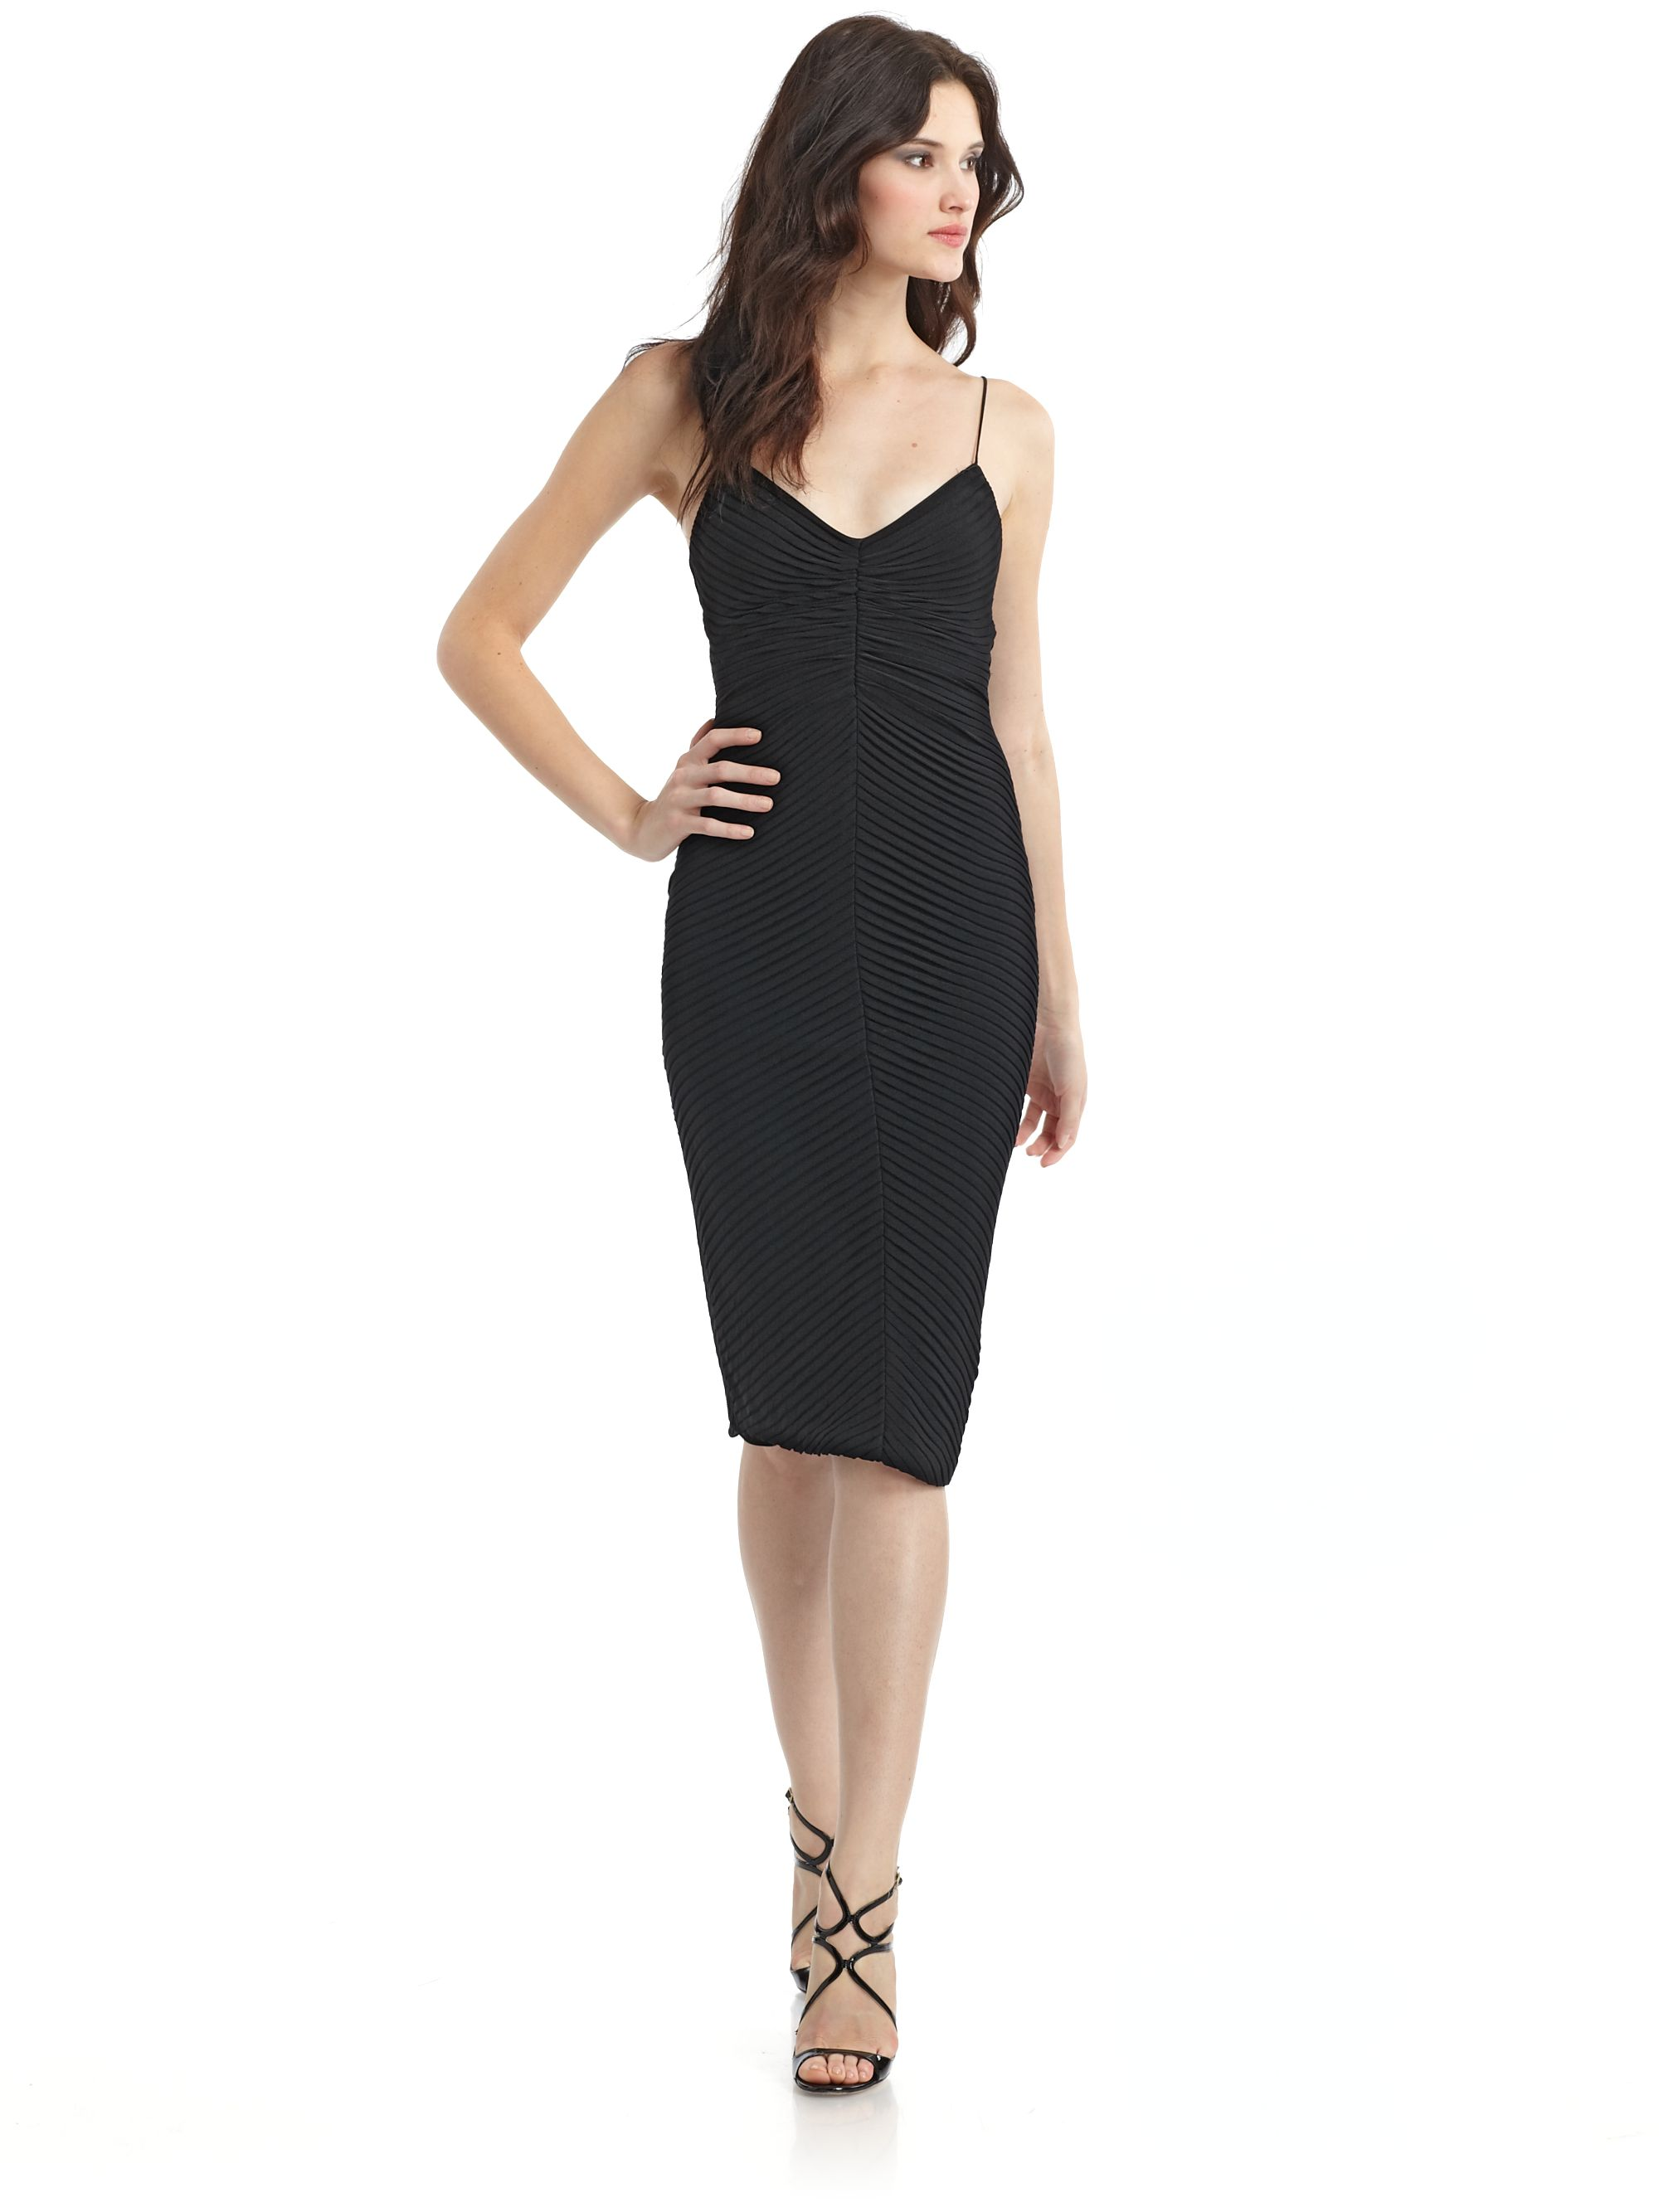 Giorgio armani Deep V Dress in Black